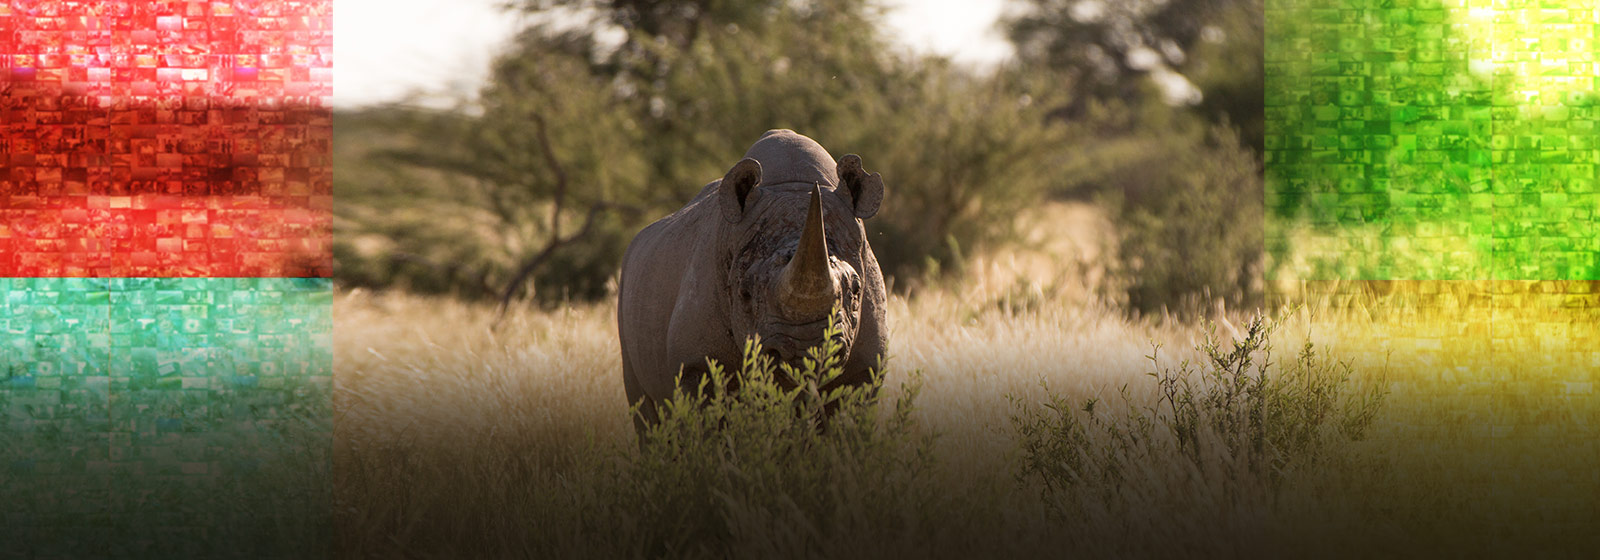 Conservationists use drones to help protect black rhinos.